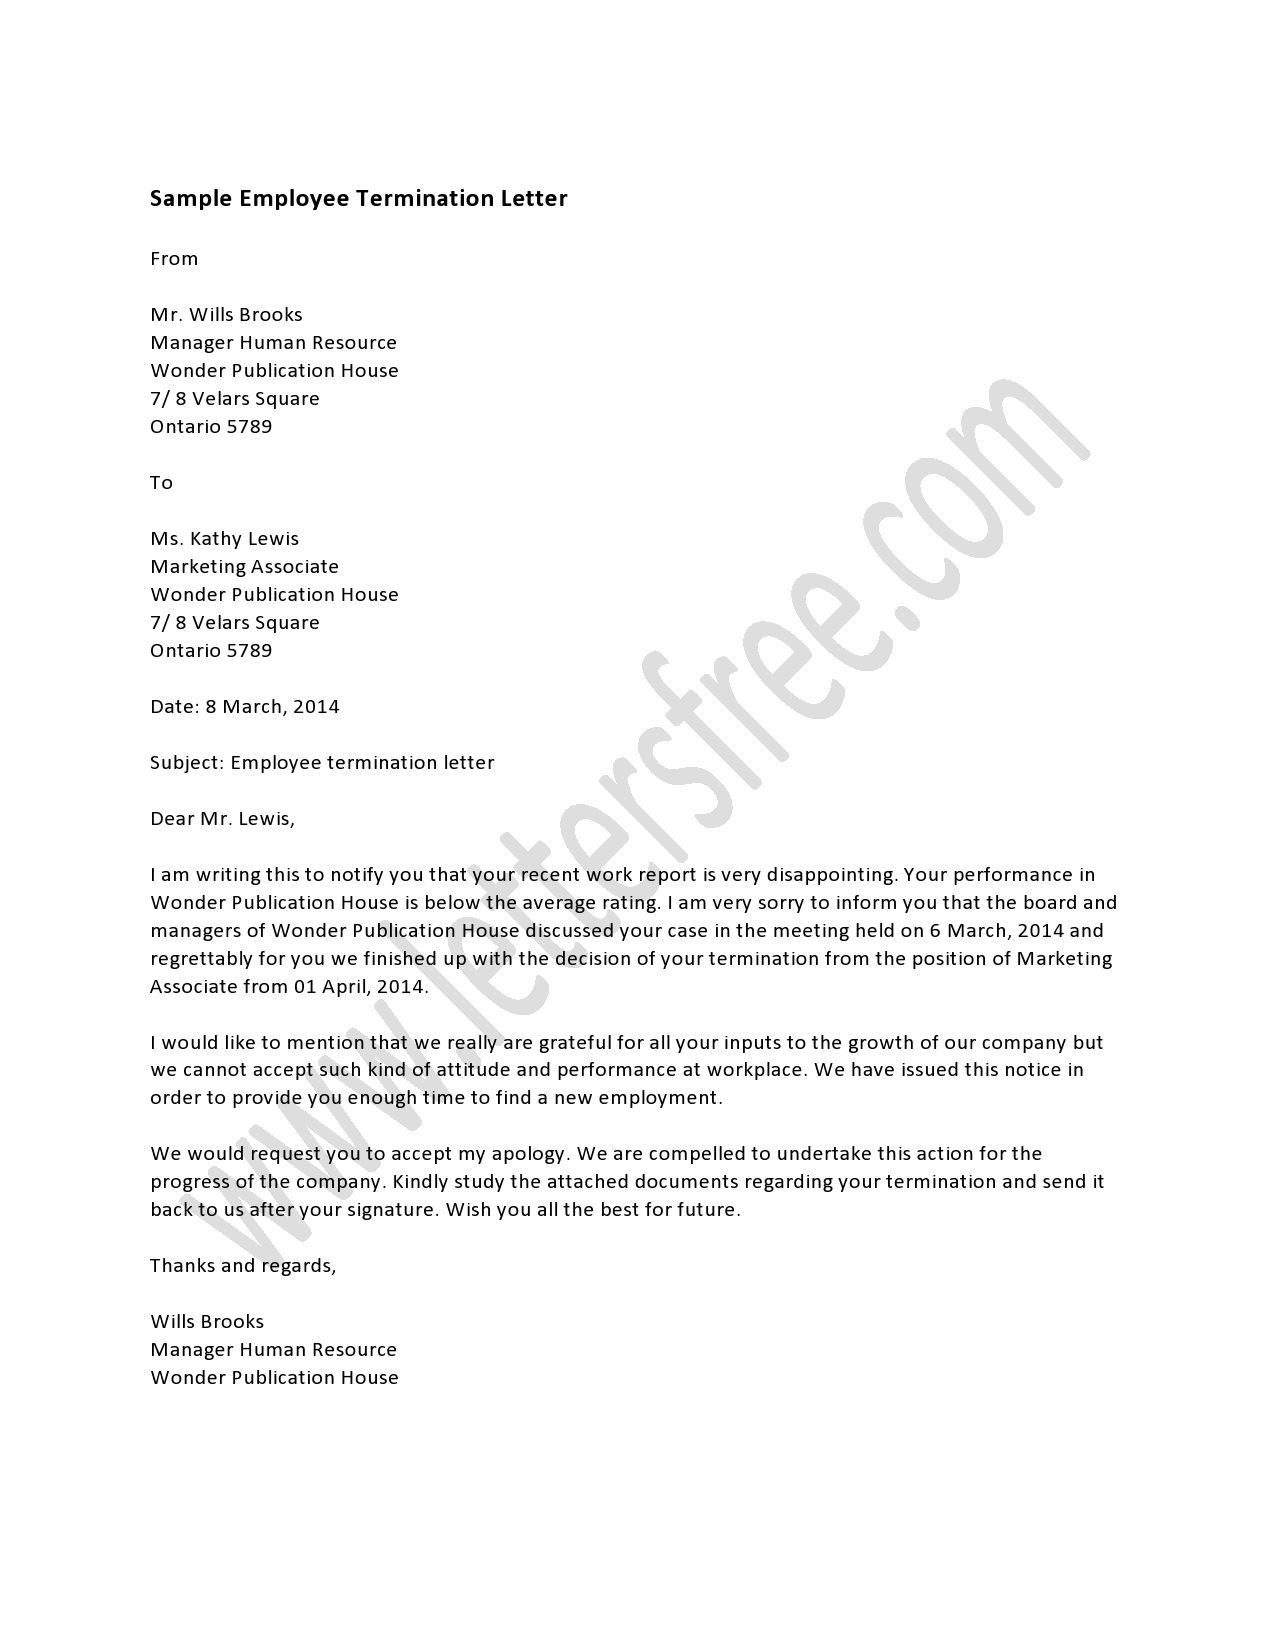 employee termination letter is a template used by companies to employee termination letter is a template used by companies to outline the terms of an employee s